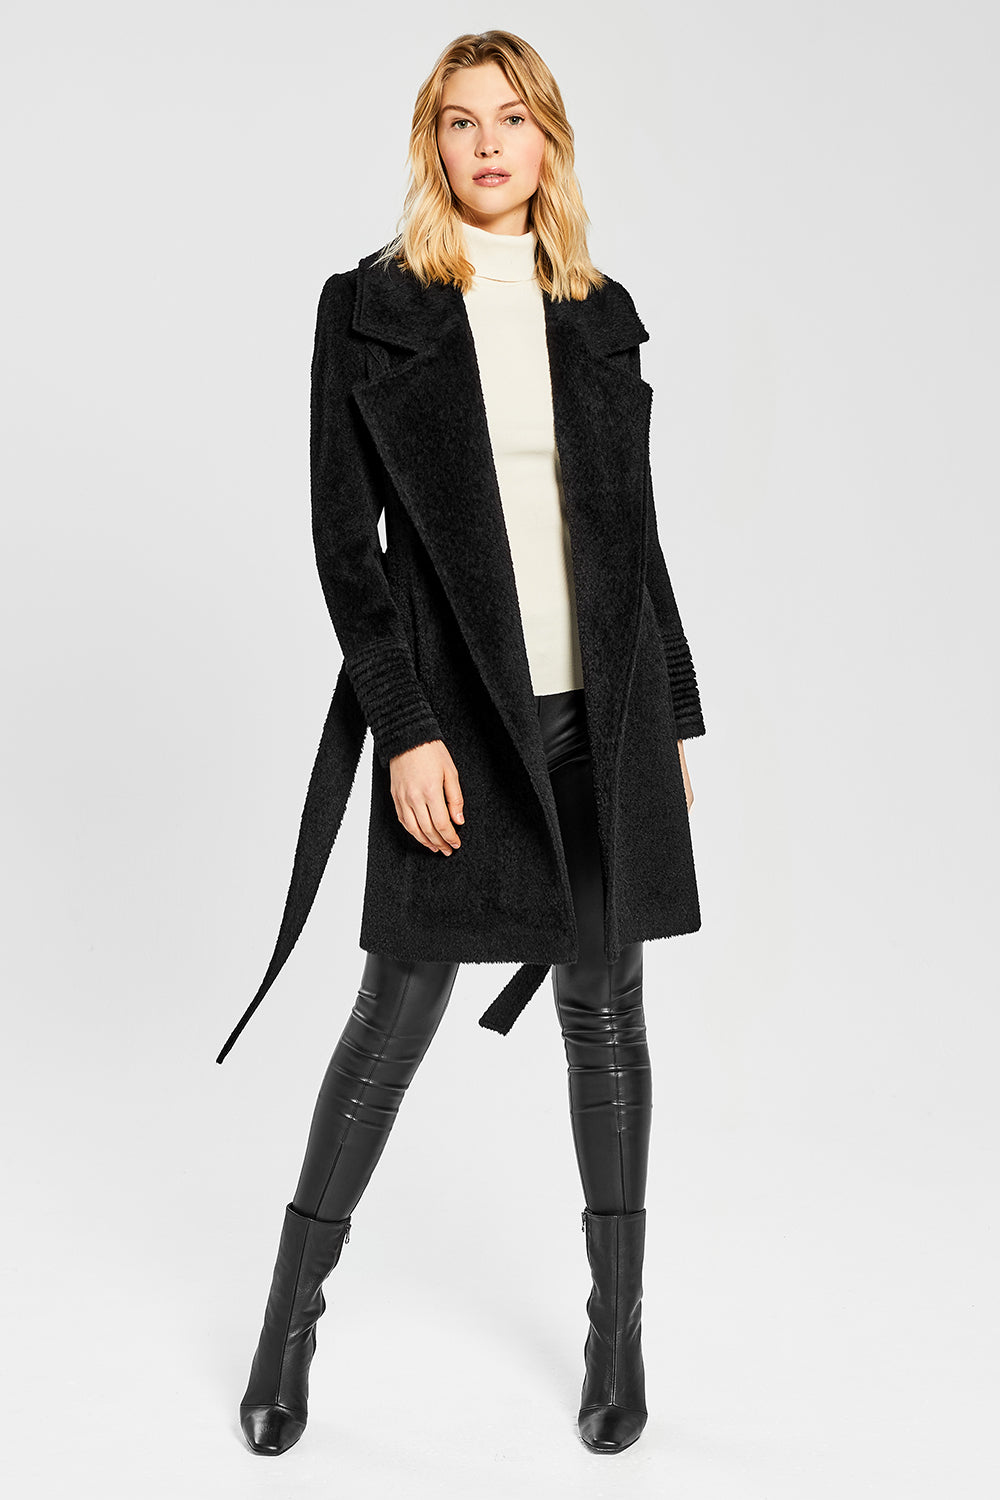 Sentaler Bouclé Alpaca Mid Length Notched Collar Wrap Coat featured in Bouclé Alpaca and available in Black. Seen open.